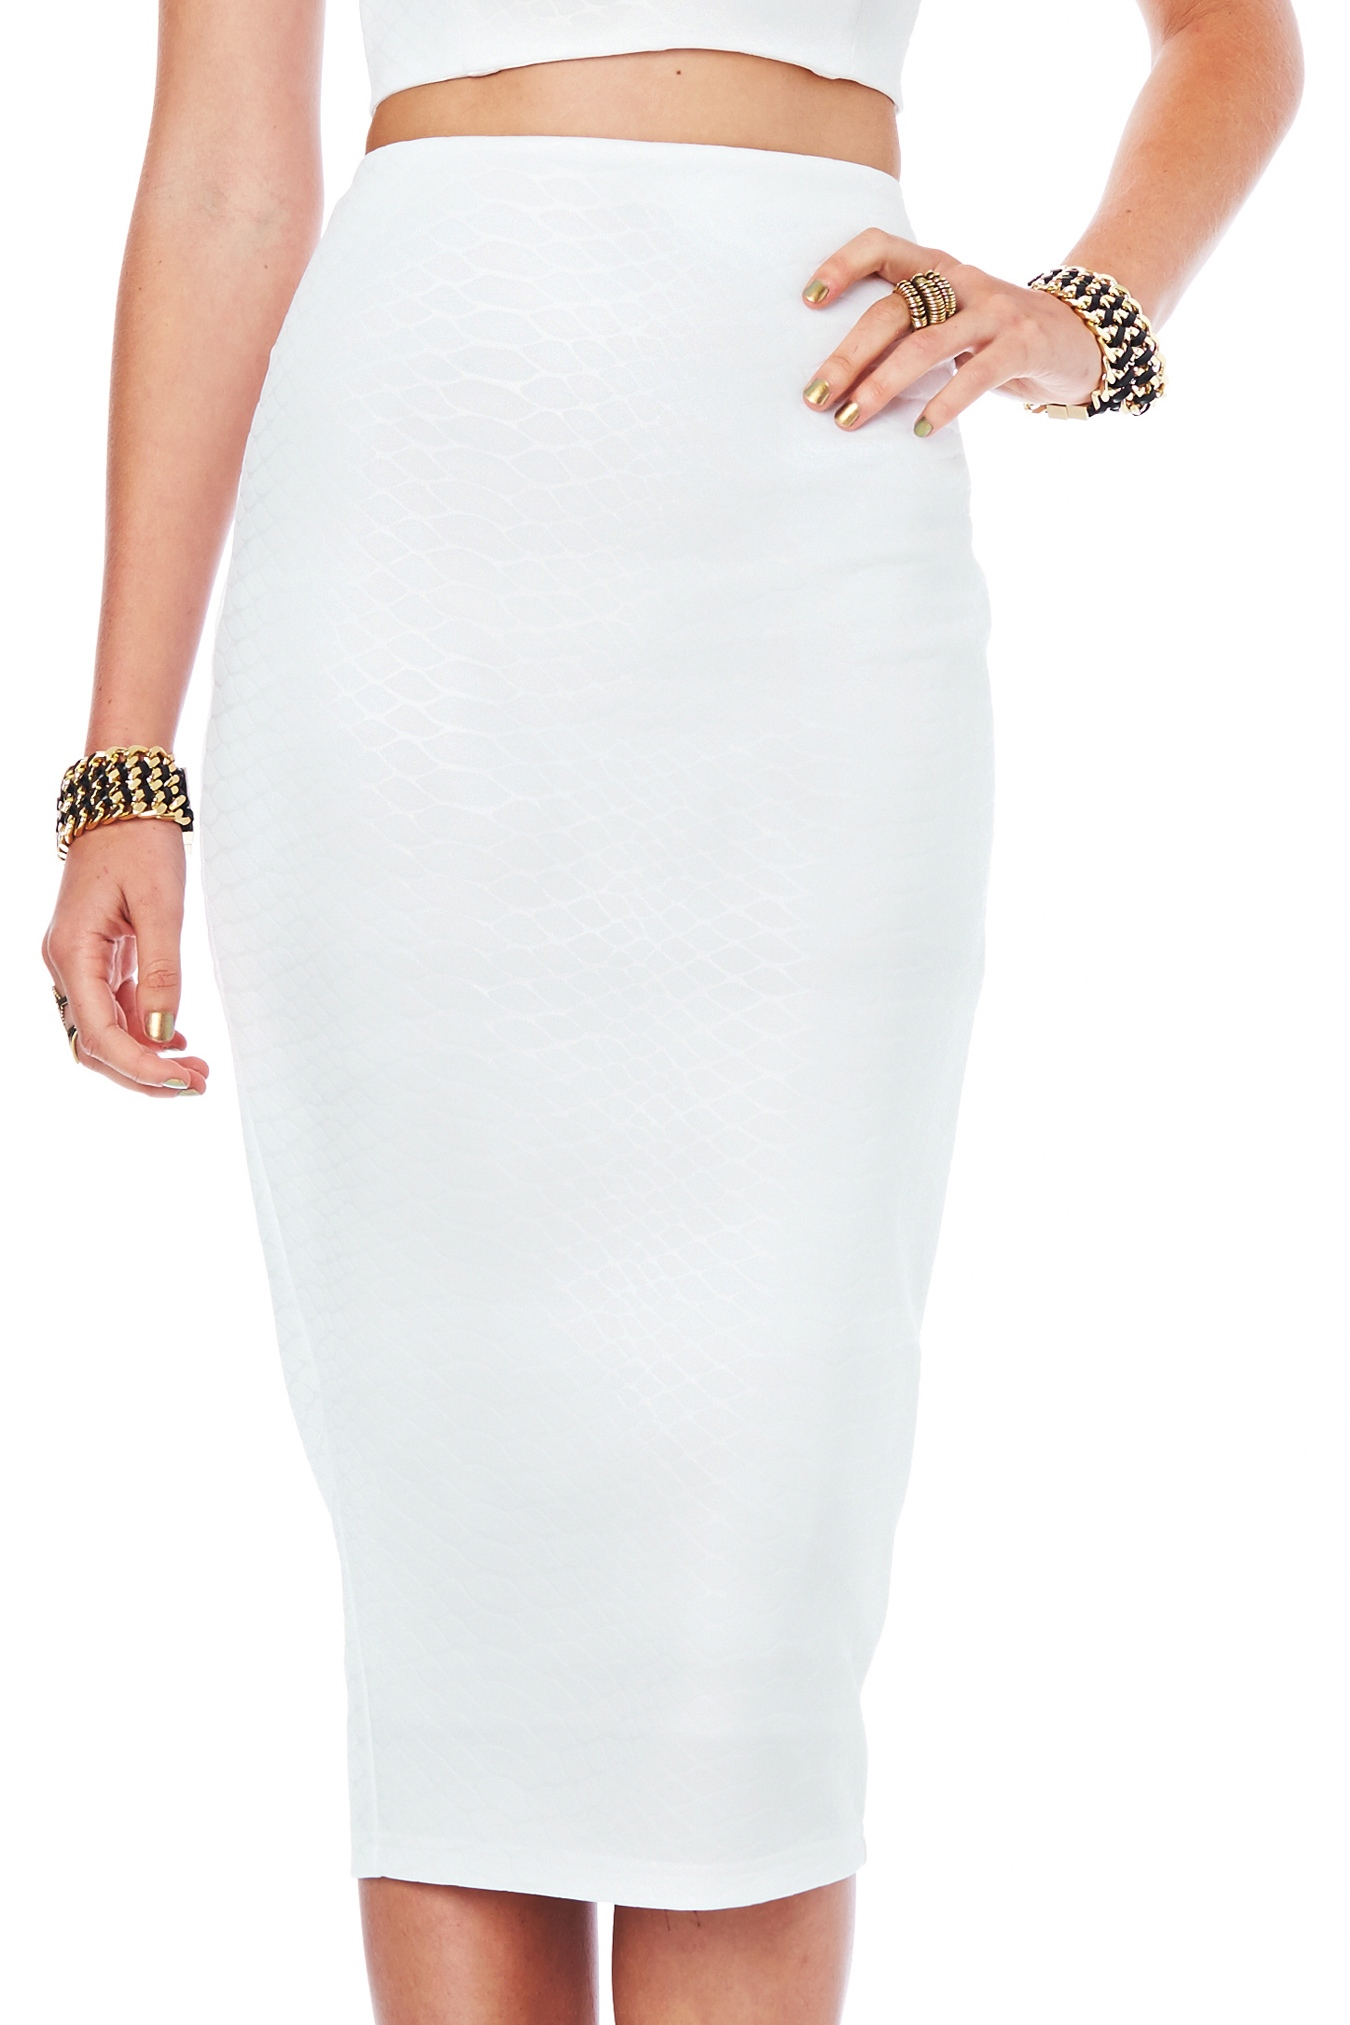 Snake Eyes Pencil Skirt : Buy Designer Dresses Online at Nookie